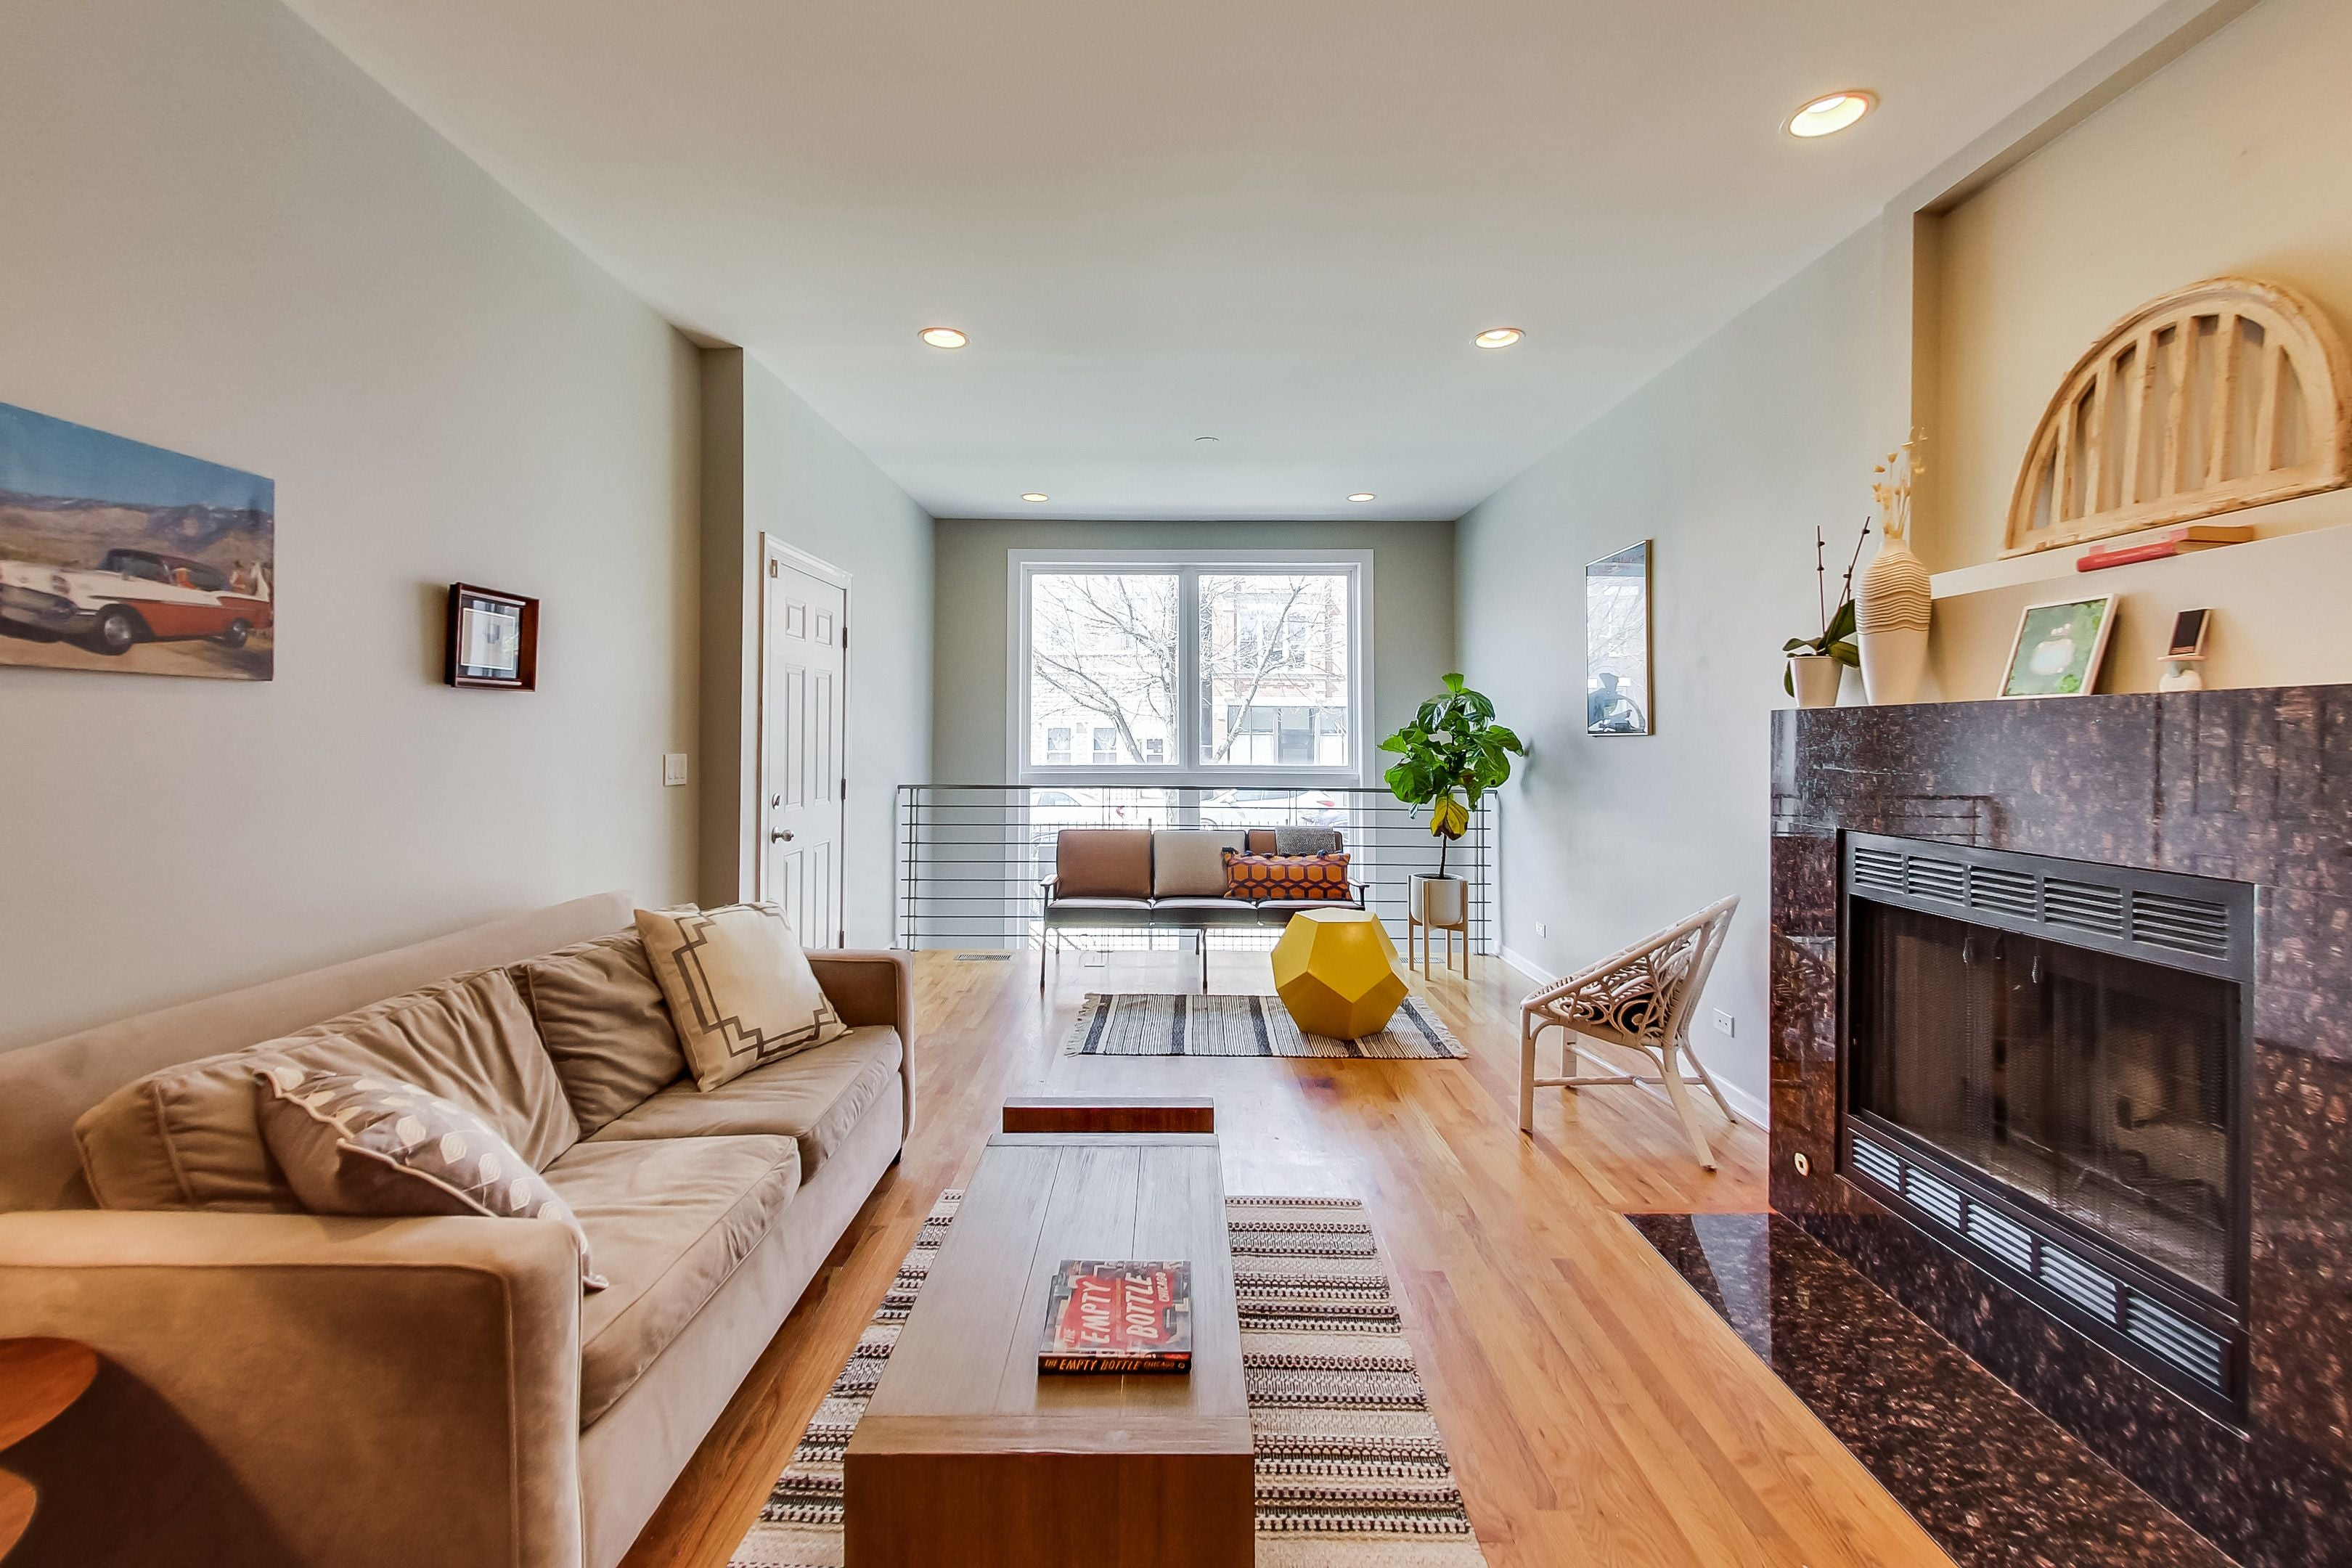 Eskell stages family condos for sale like this West Town starter home.